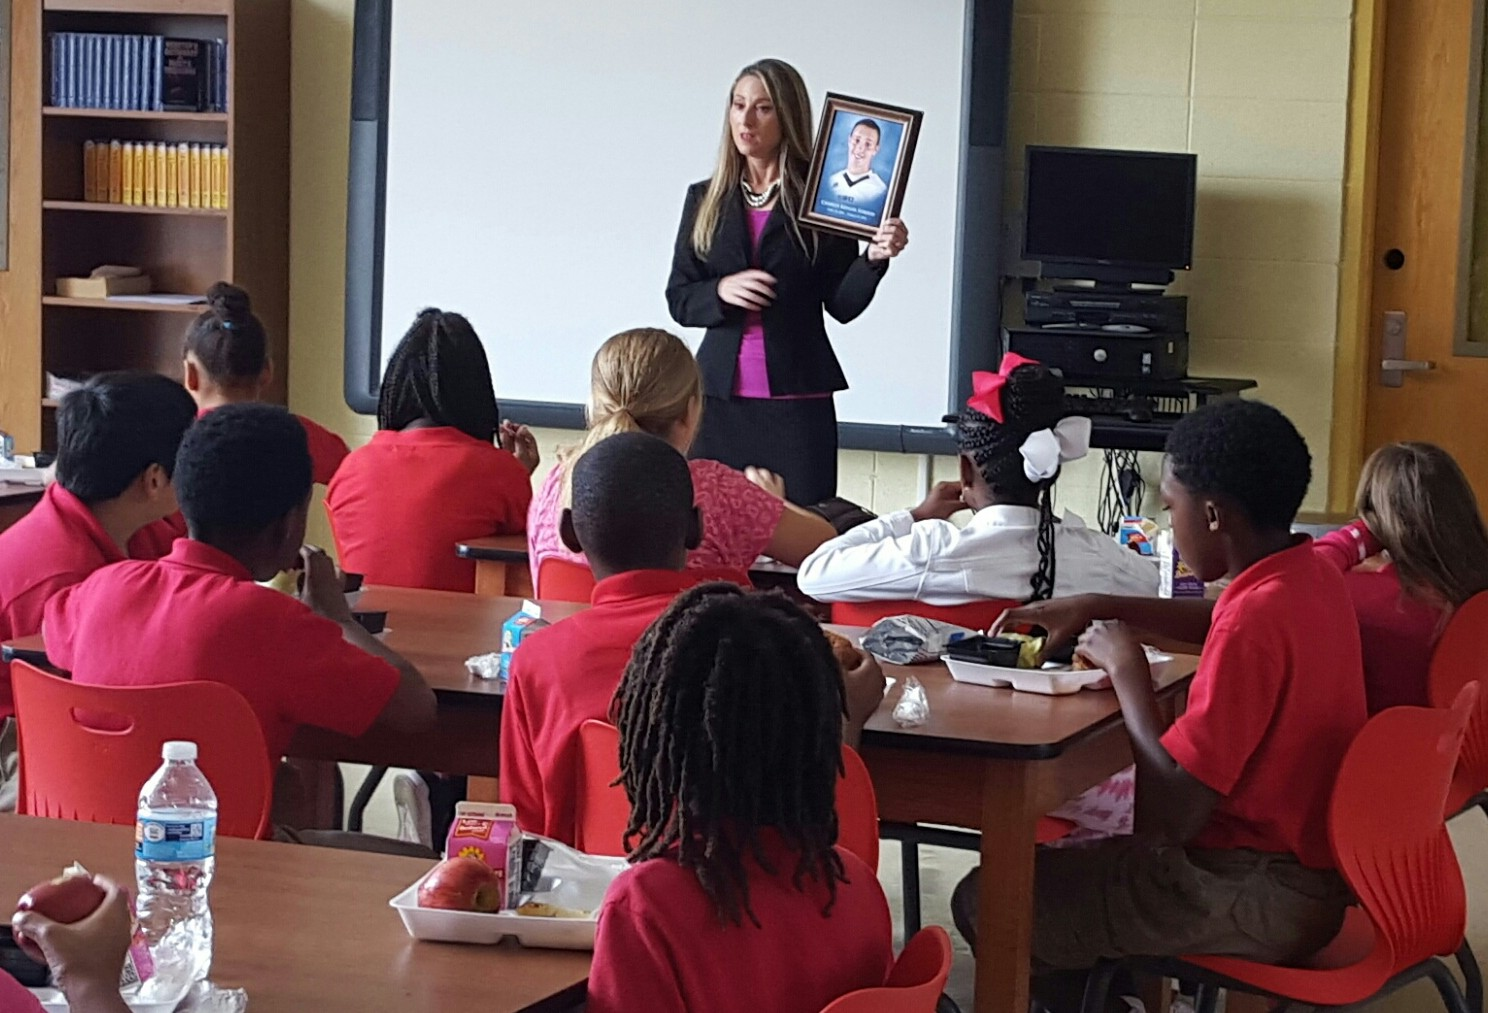 Educating schoolchildren on the dangers of huffing has become Stacie Triche's mission.